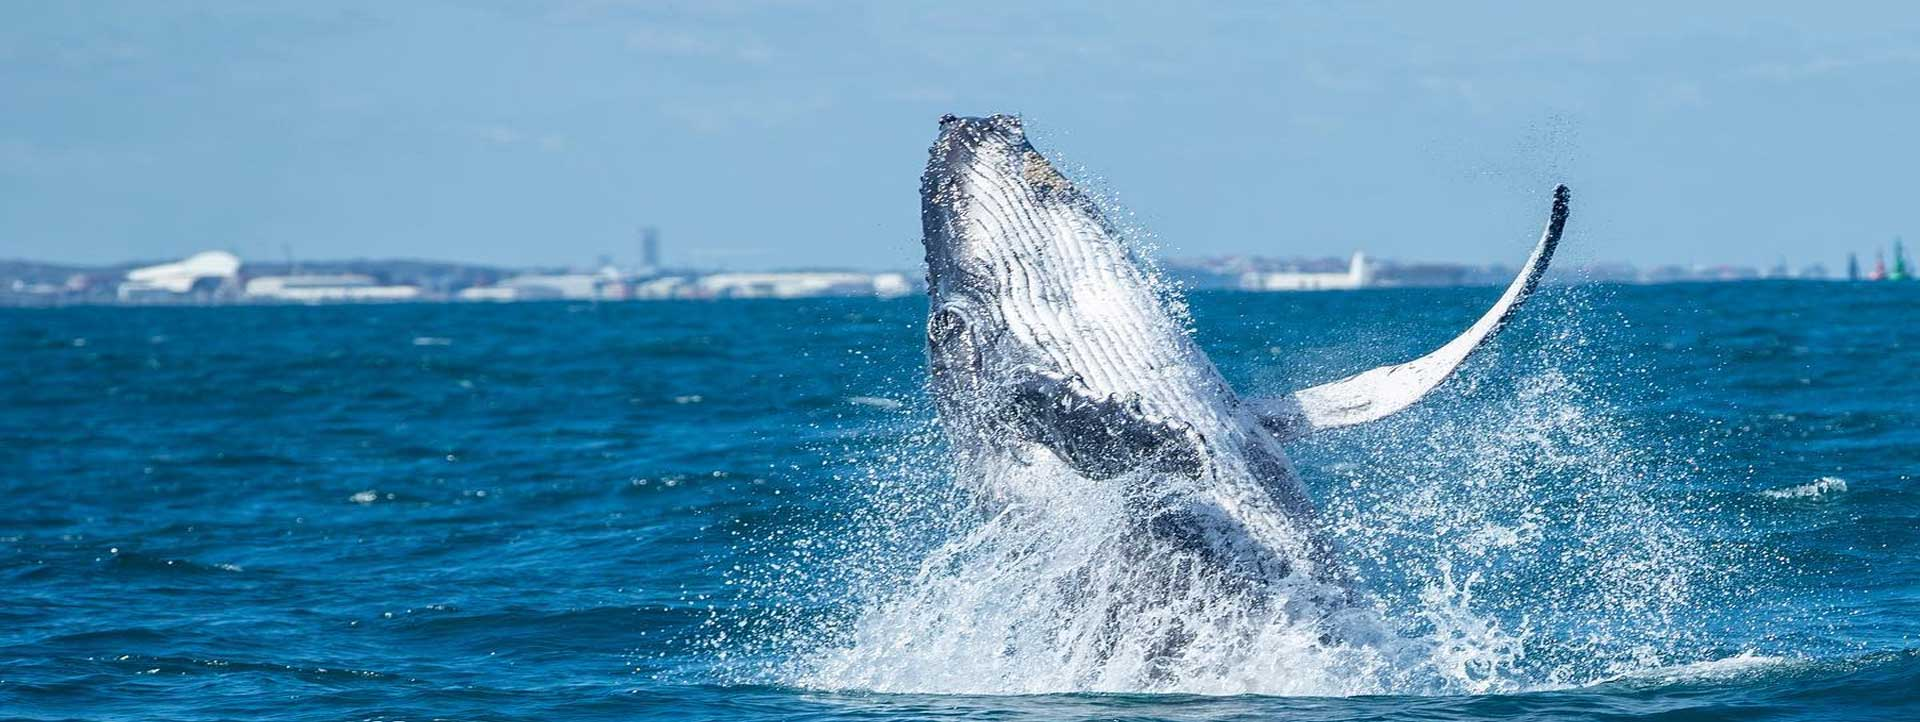 Whale-Watching-eco-adventure-tourisim